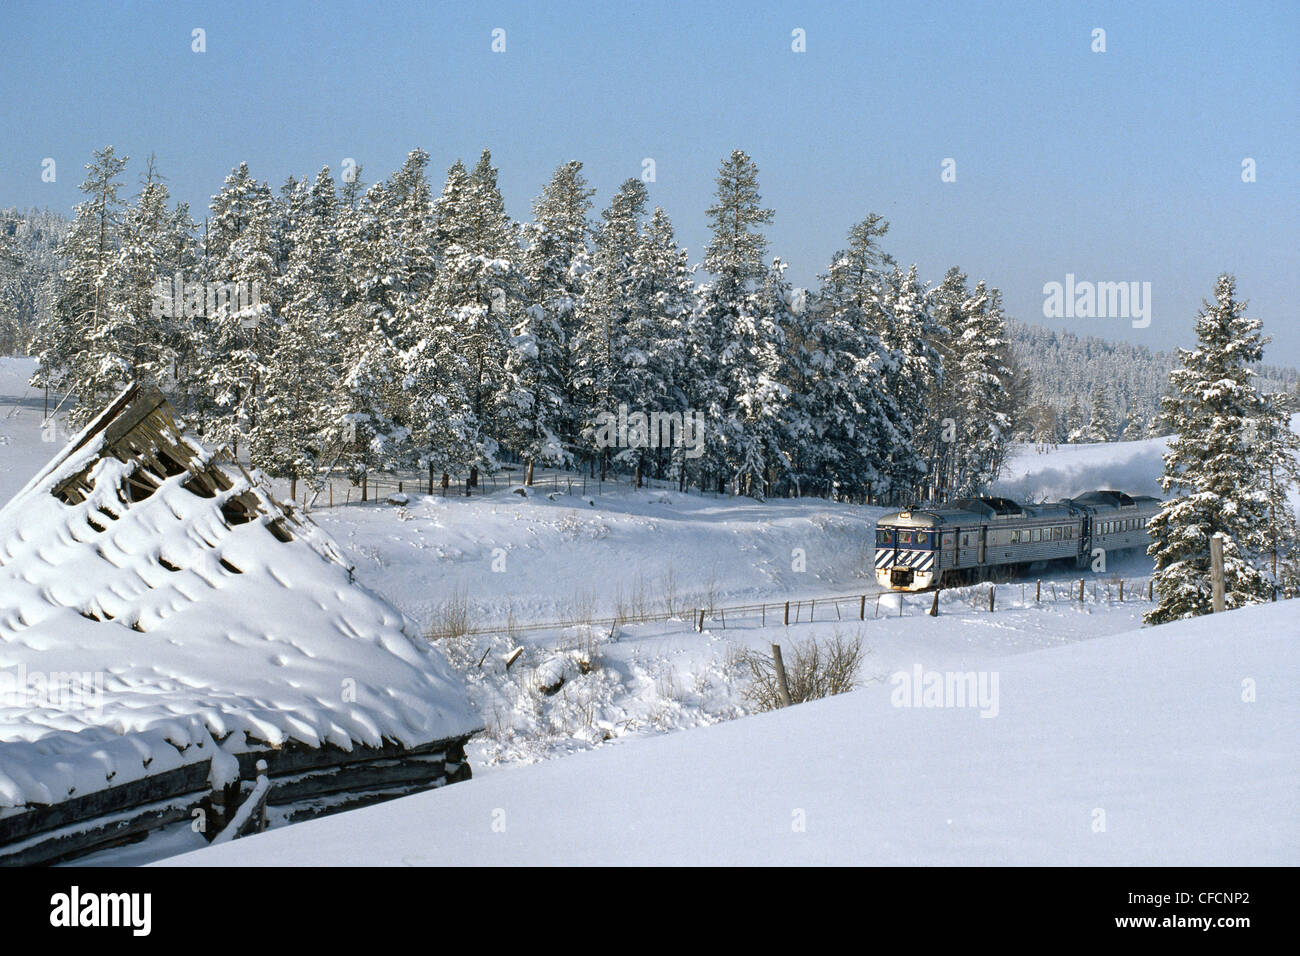 The BC Rail 'Prospector' train travelling through the Cariboo Region, British Columbia, Canada - Stock Image